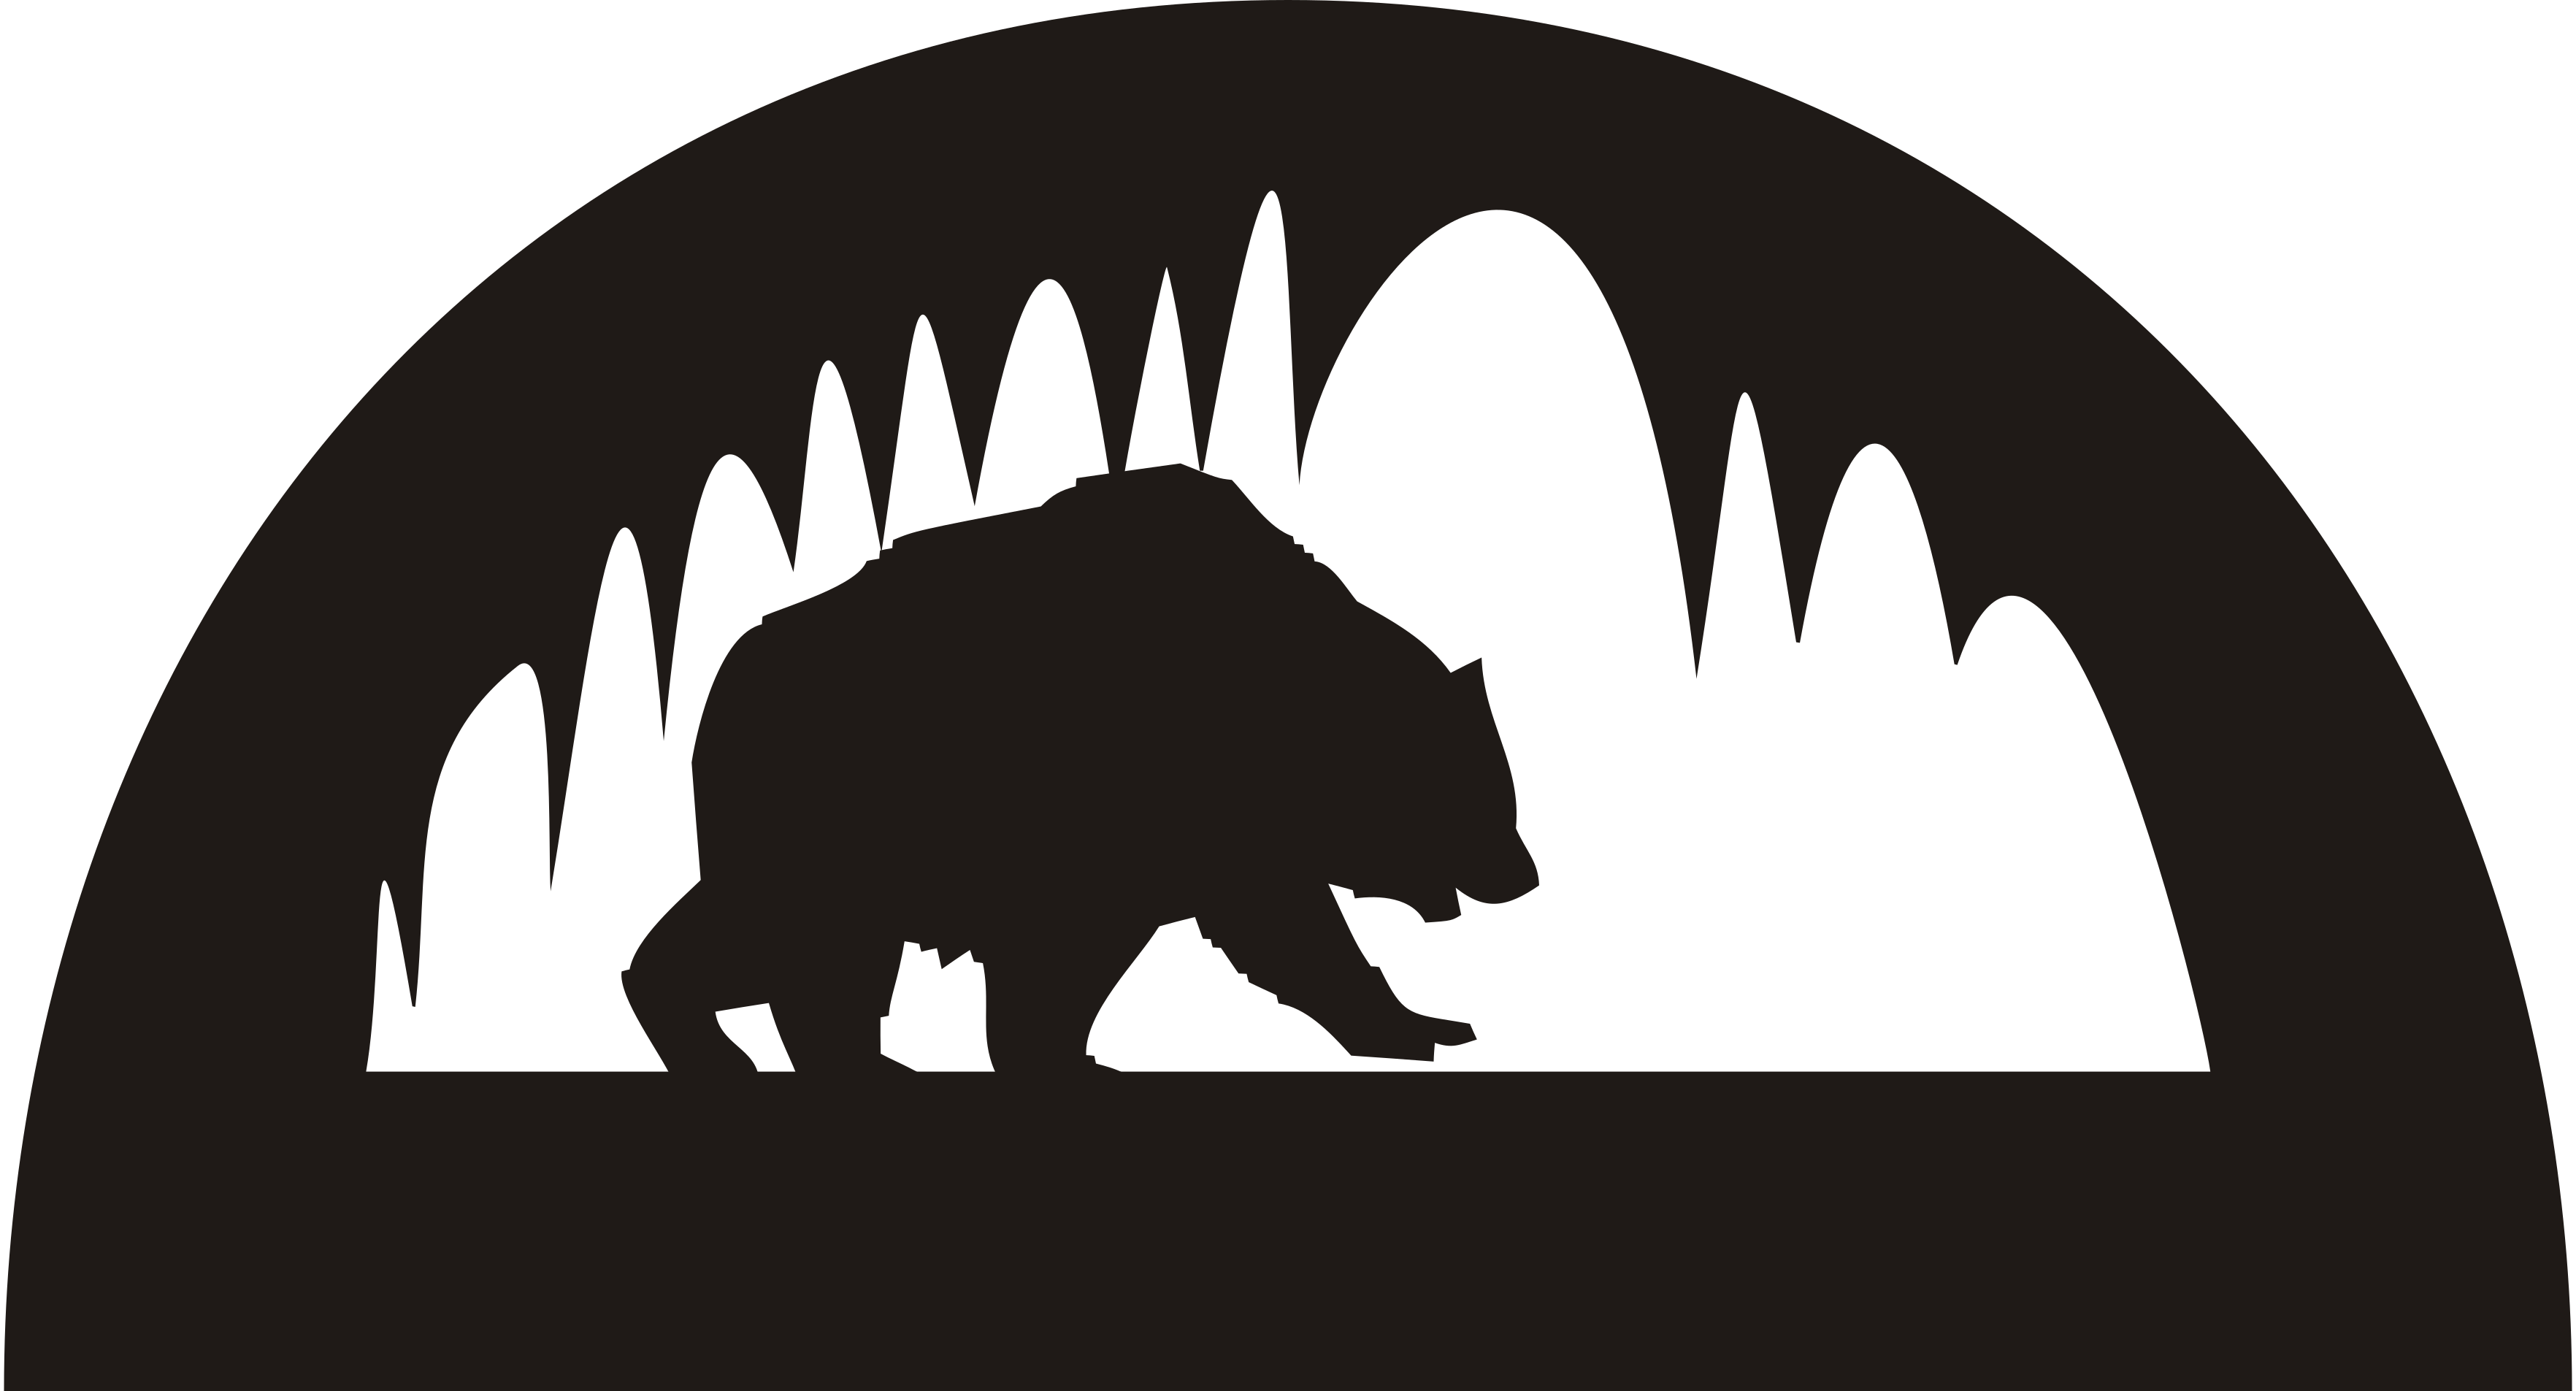 File bear svg wikipedia. Cave clipart cave animal banner black and white download